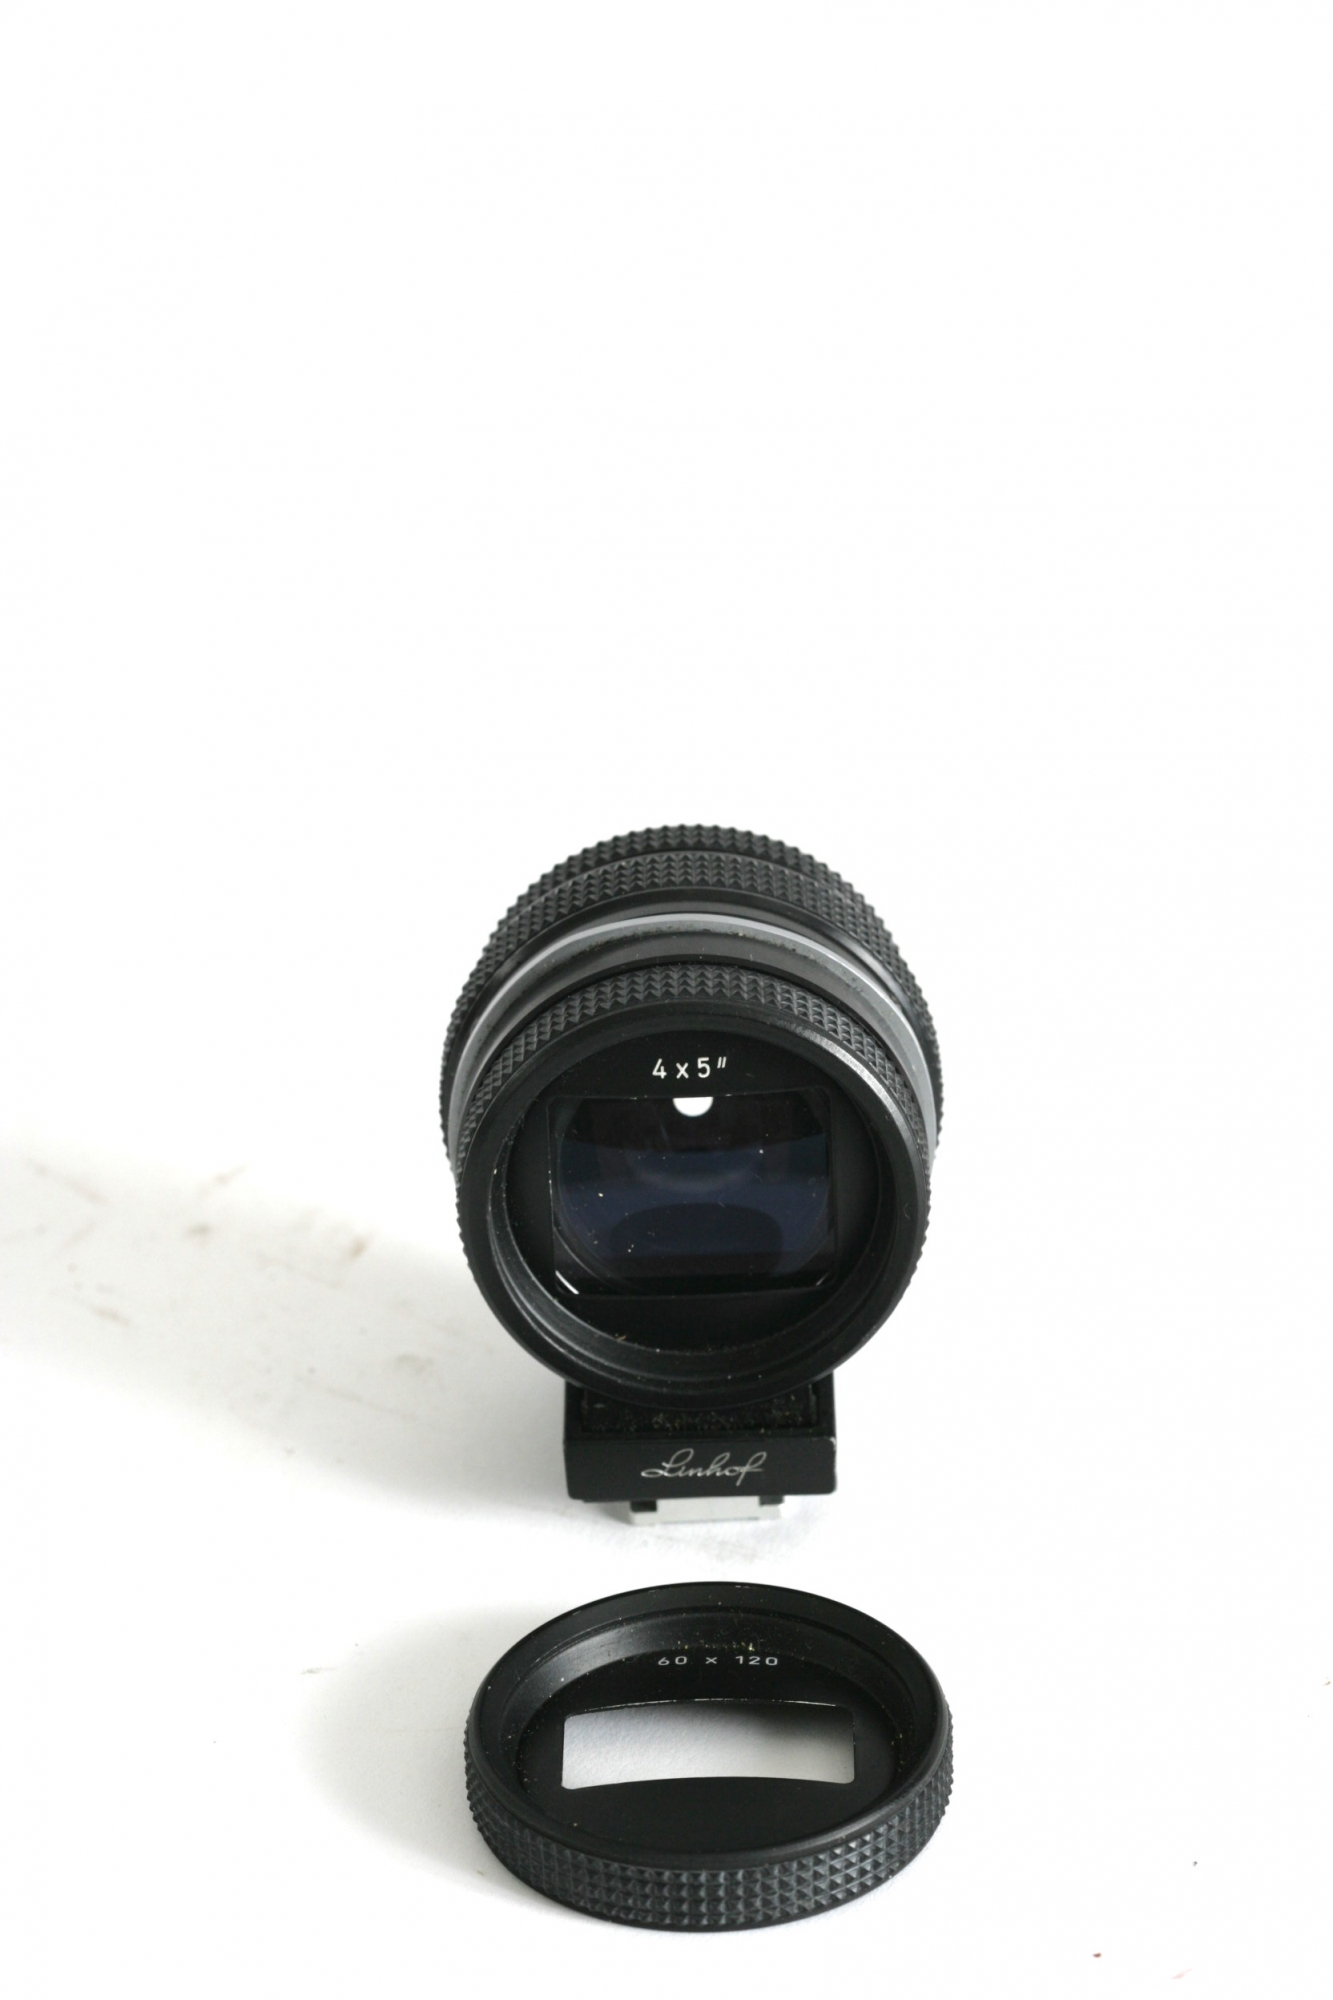 View finder : 75mm-240mm